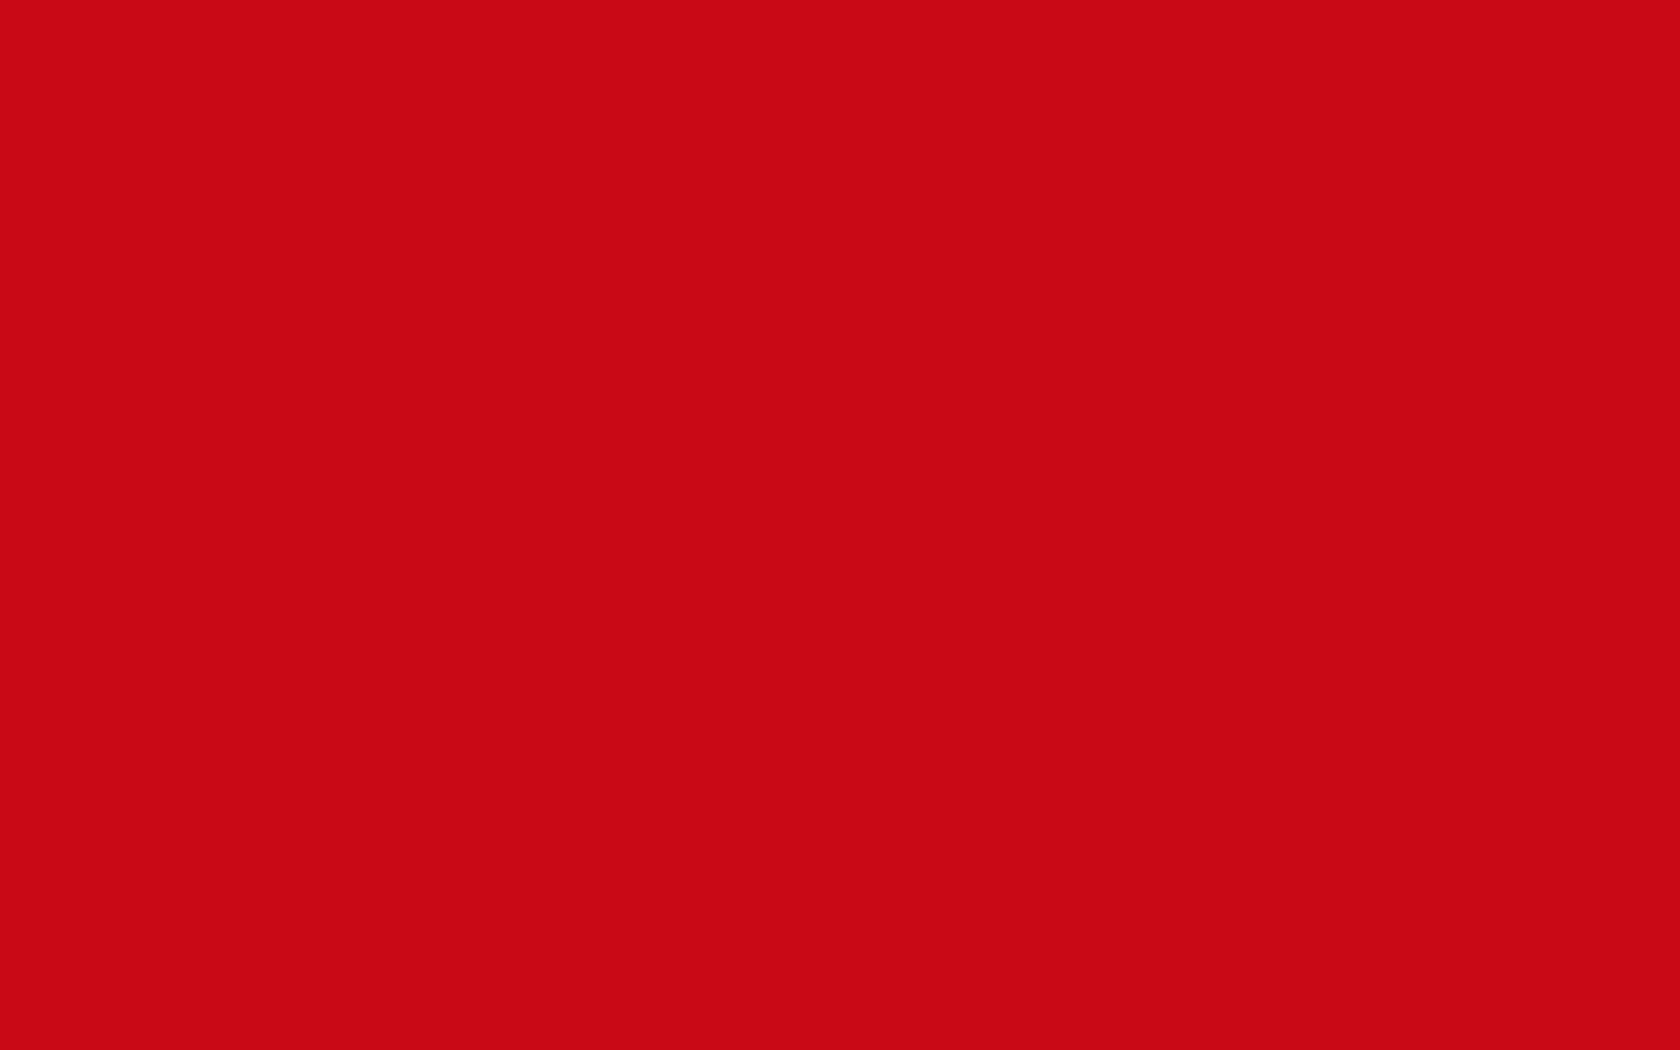 1680x1050 Venetian Red Solid Color Background